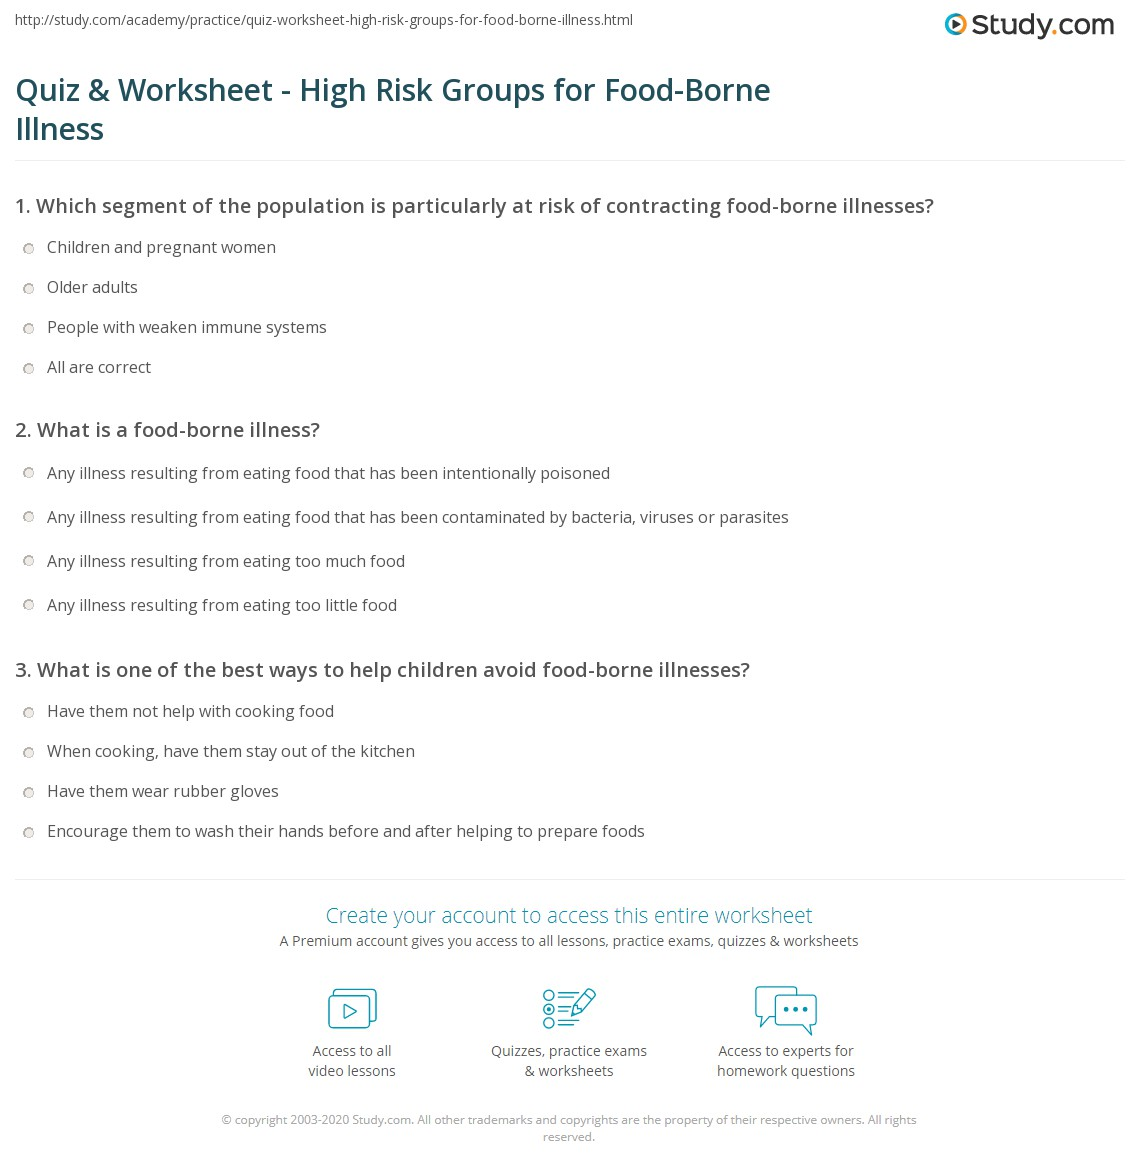 quiz worksheet high risk groups for food borne illness. Black Bedroom Furniture Sets. Home Design Ideas